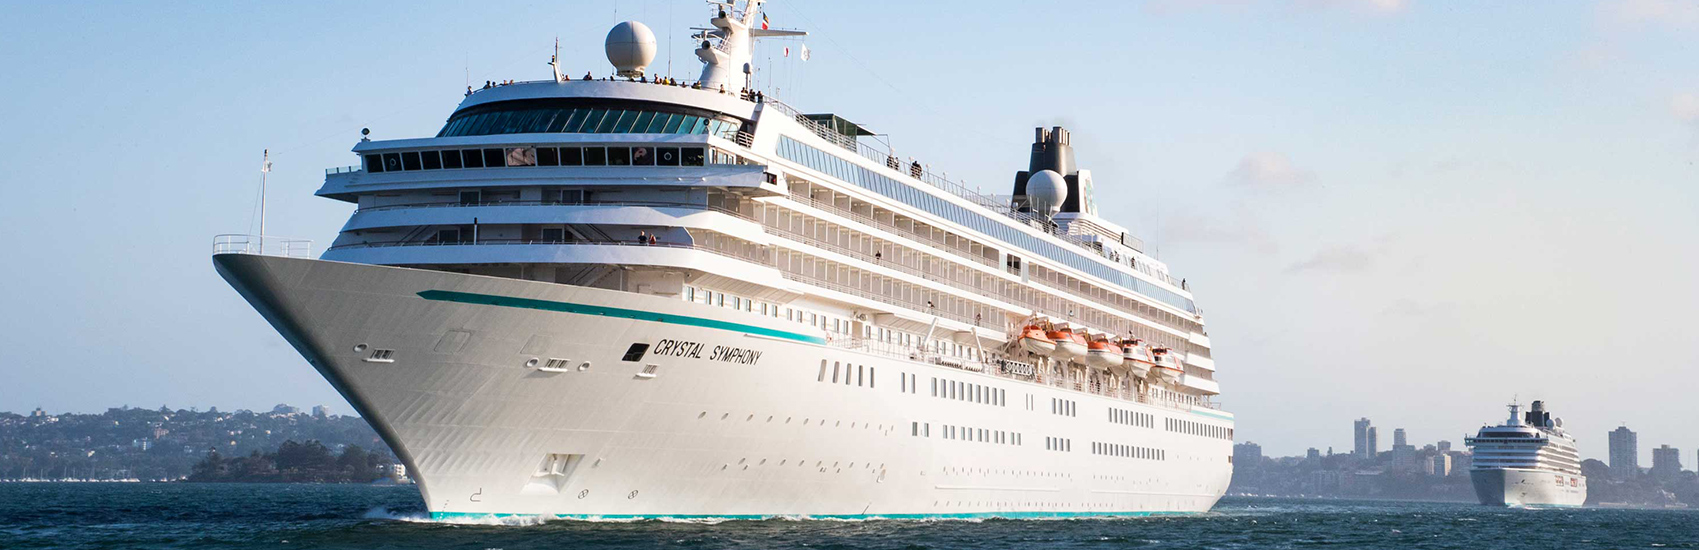 Limited Time Savings with Crystal Cruises 0